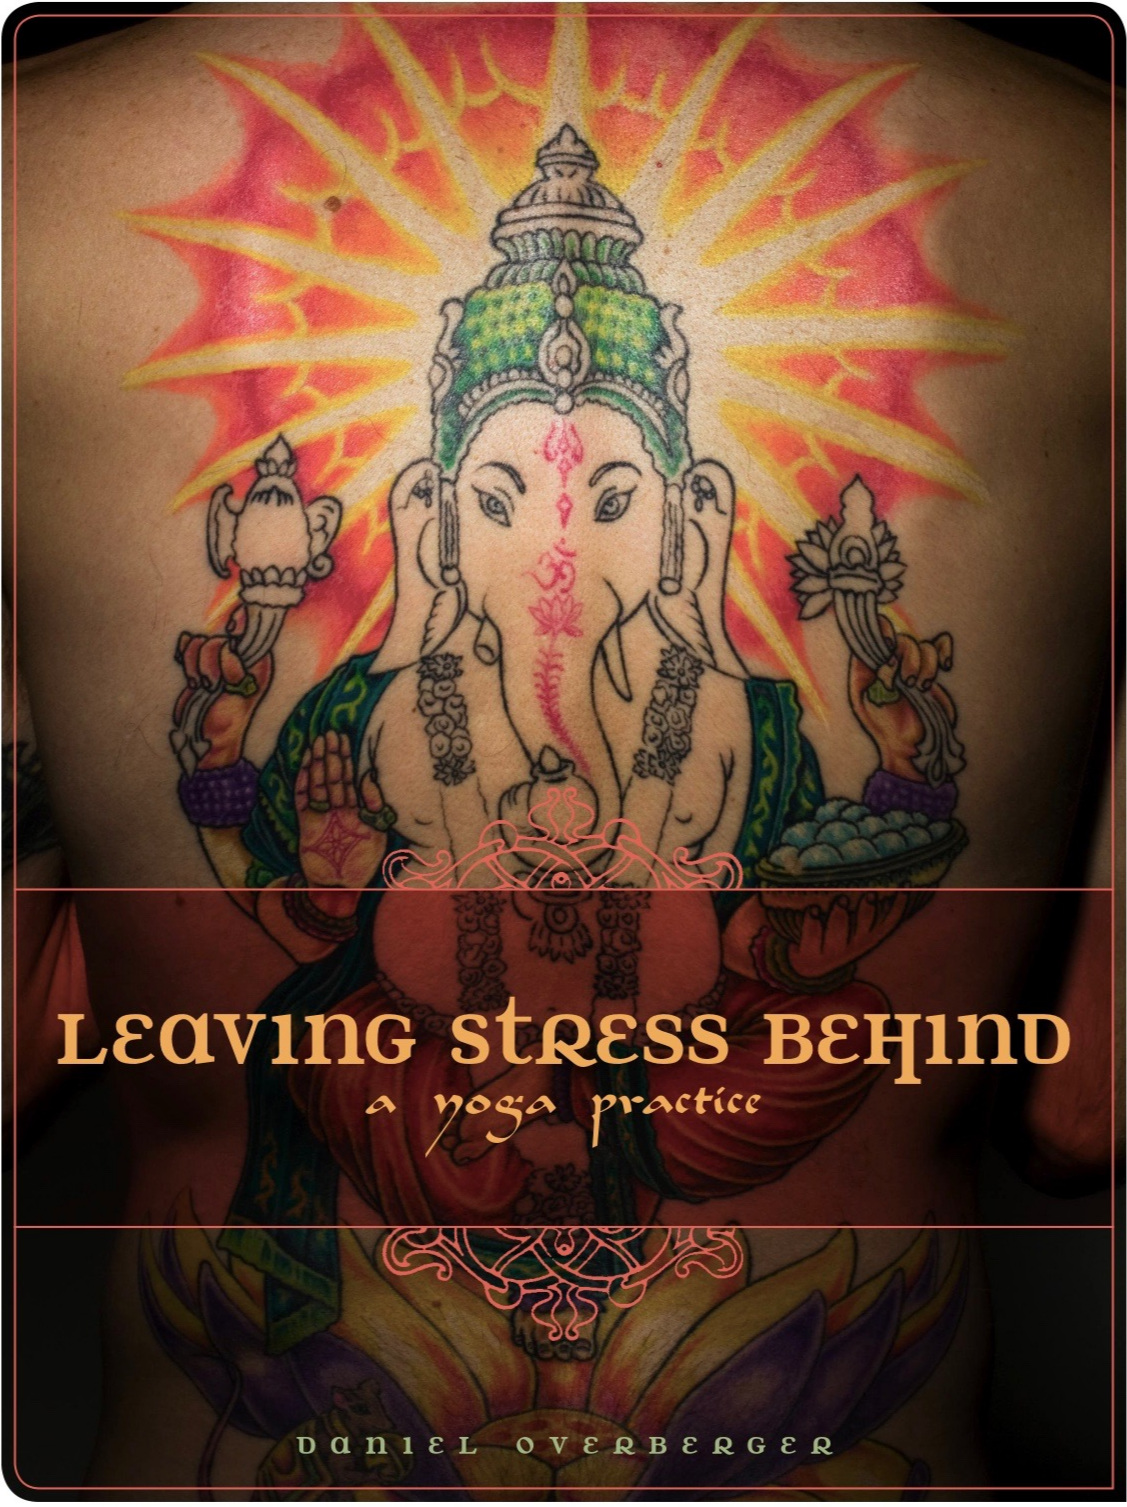 Leaving Stress Behind: A Yoga Practice   This all-levels class (complete with companion instructional CD) and stories from India will leave you inspired and emboldened to tiptoe, walk, or run screaming out your own personal edge. Spiral bound for easy reference during practice.   $18.95